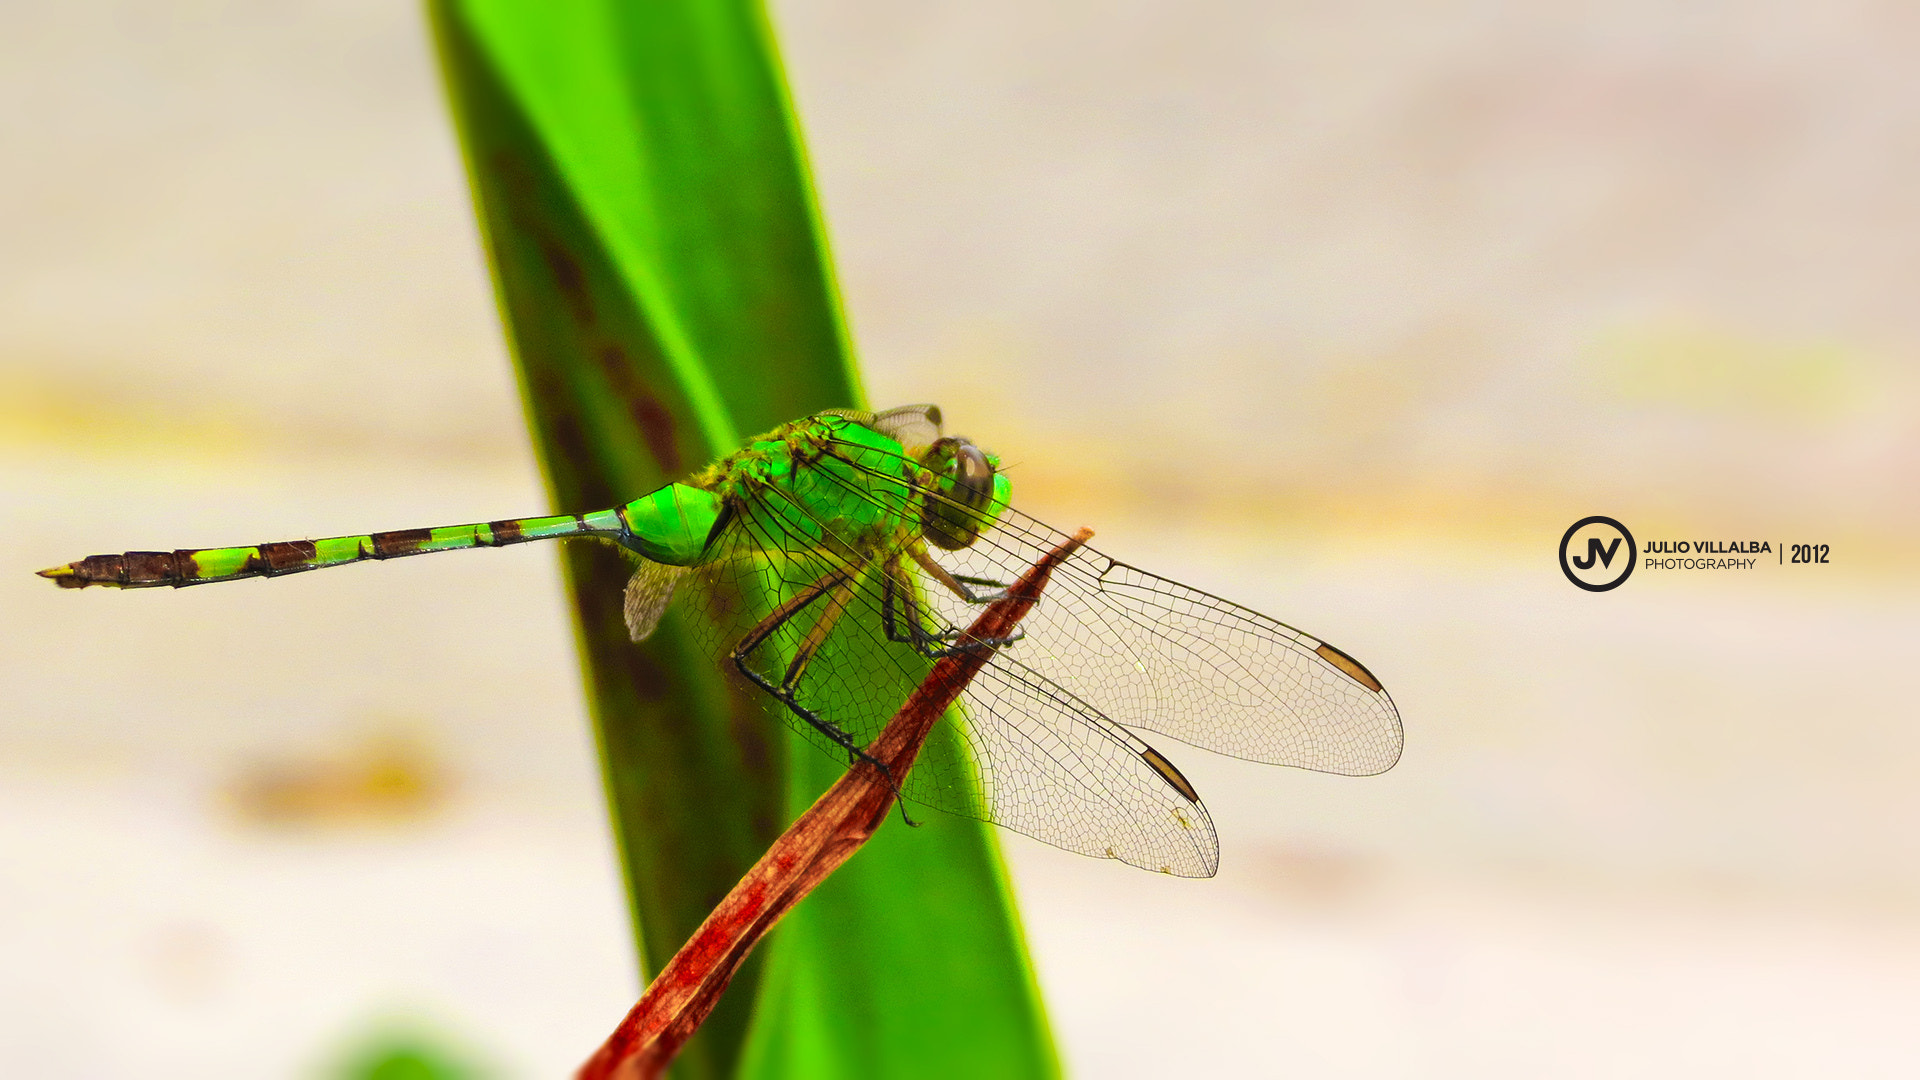 Photograph Green Dragonfly by Julio Villalba M. on 500px